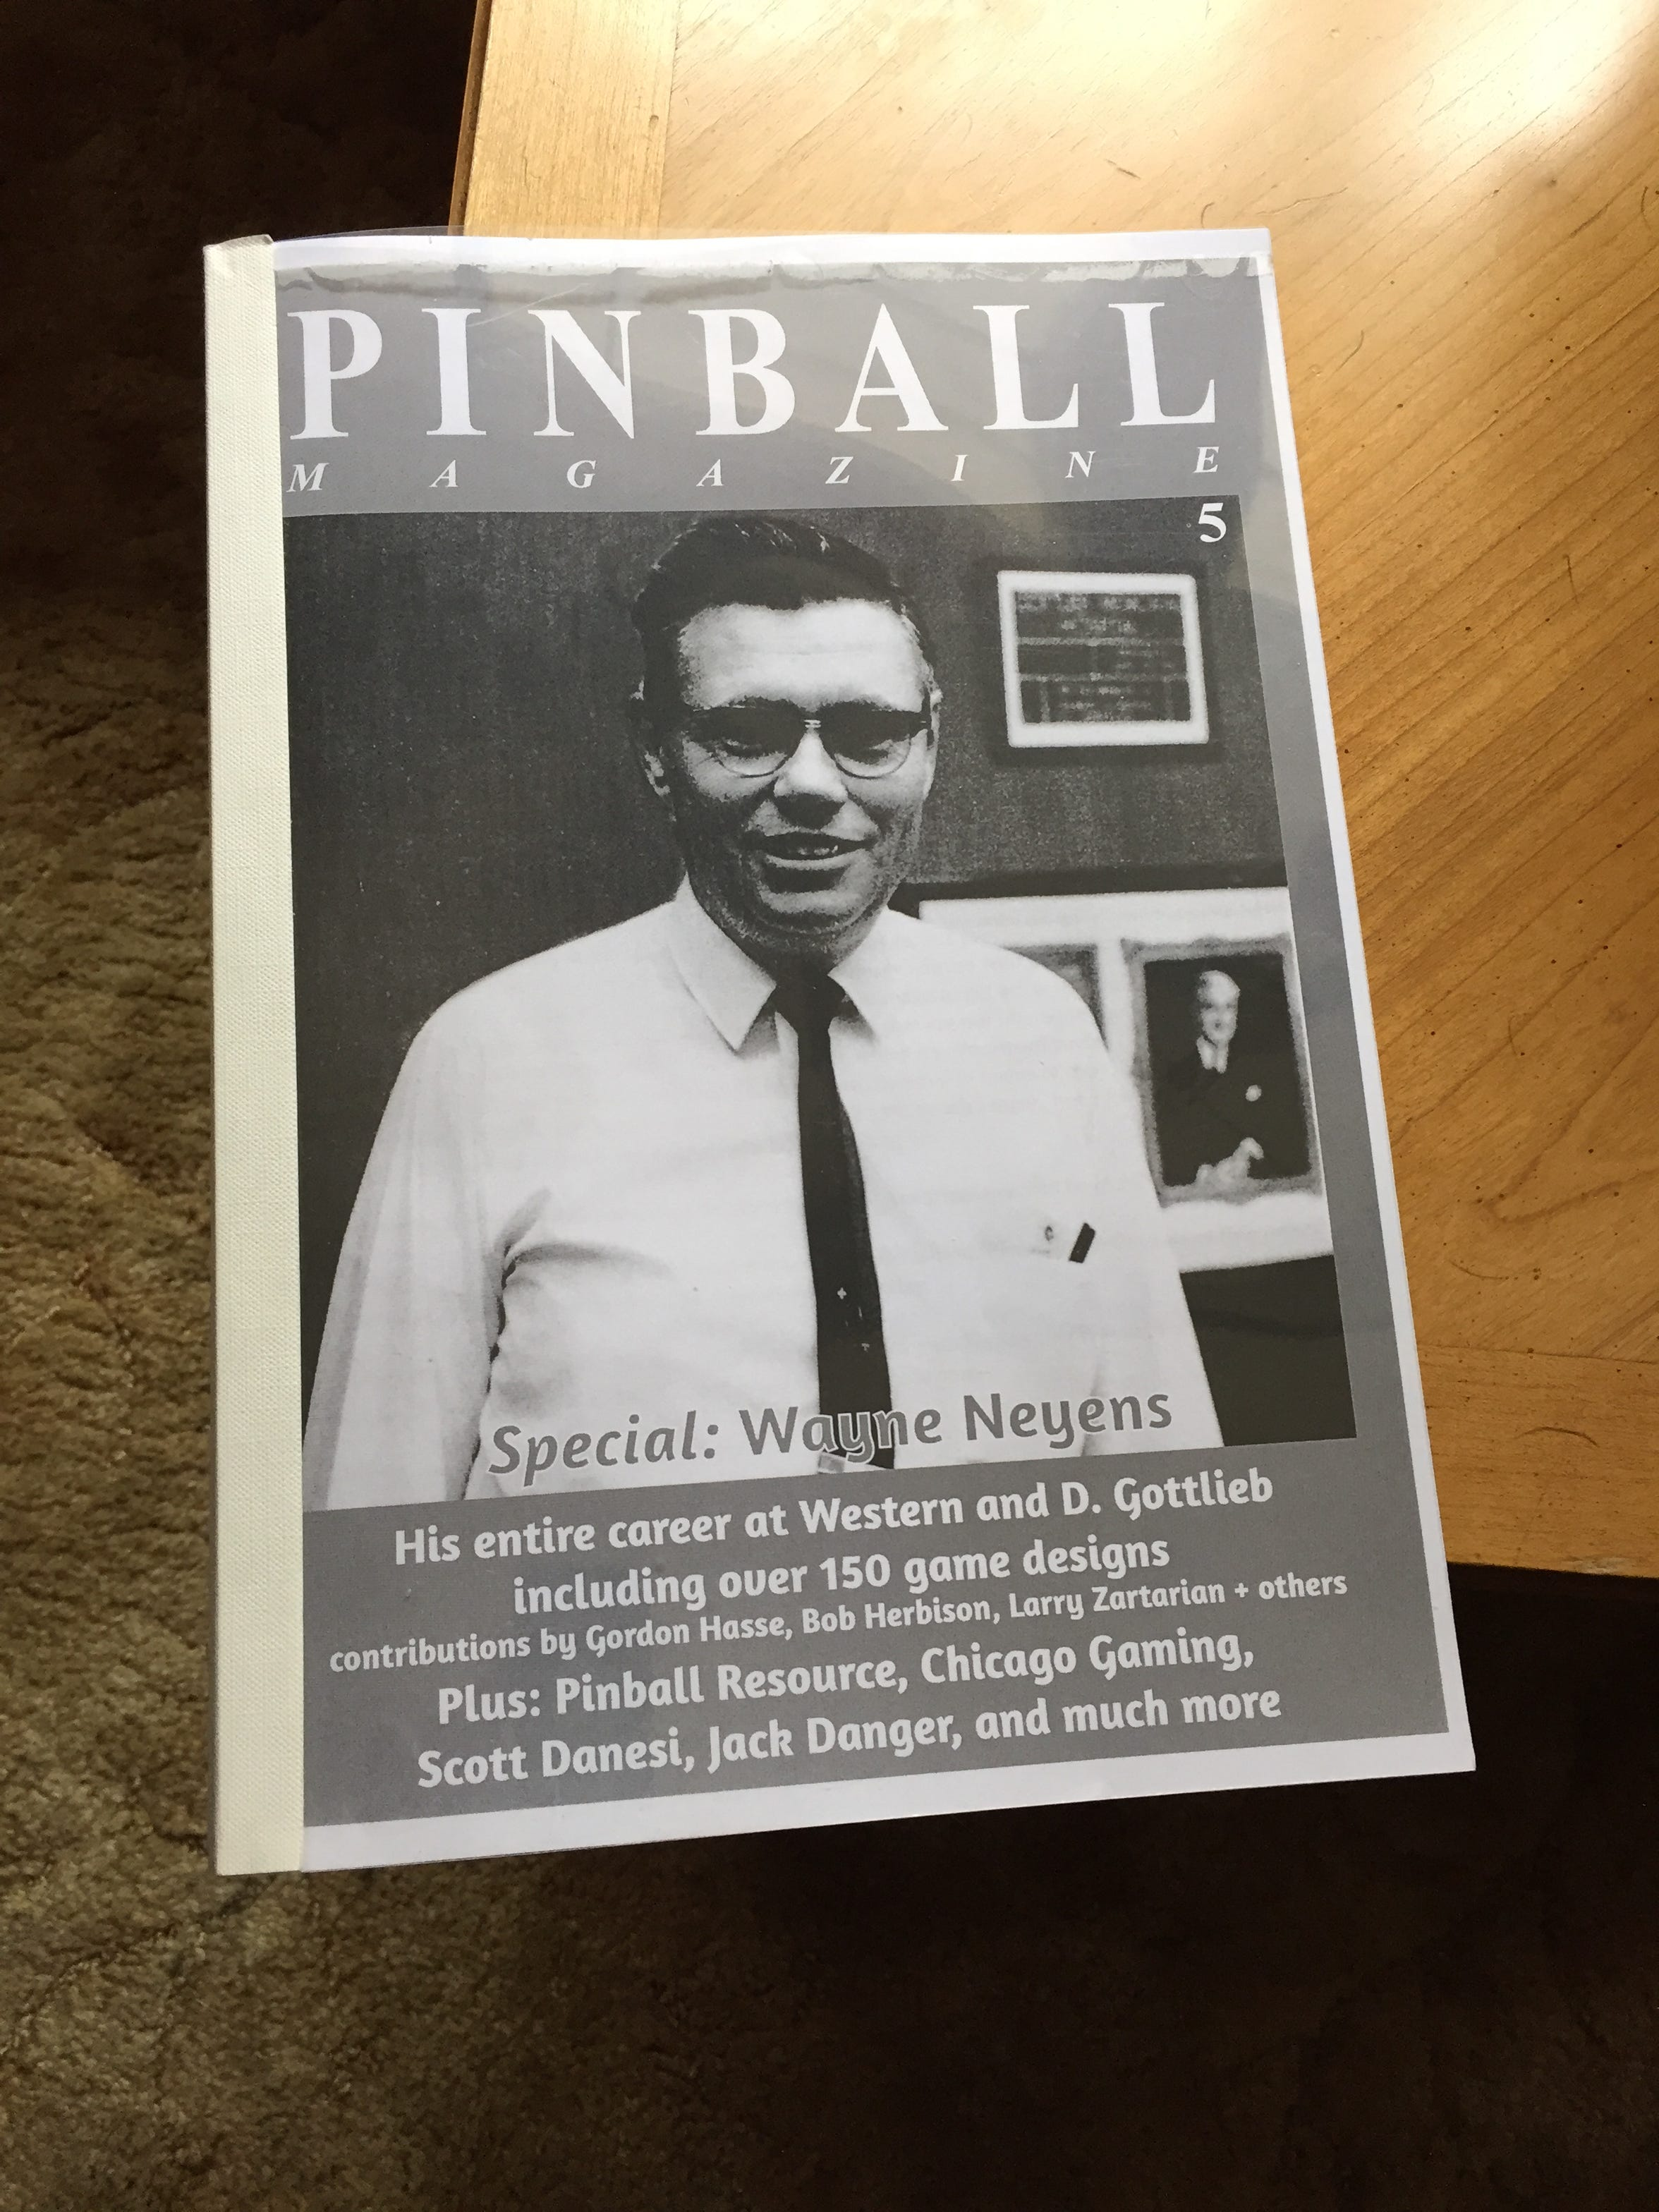 Wayne Neyens is editing a yet-to-be published book detailing his career in the pinball machine industry. Neyens designed about 150 pinball games between 1949 and 1968.